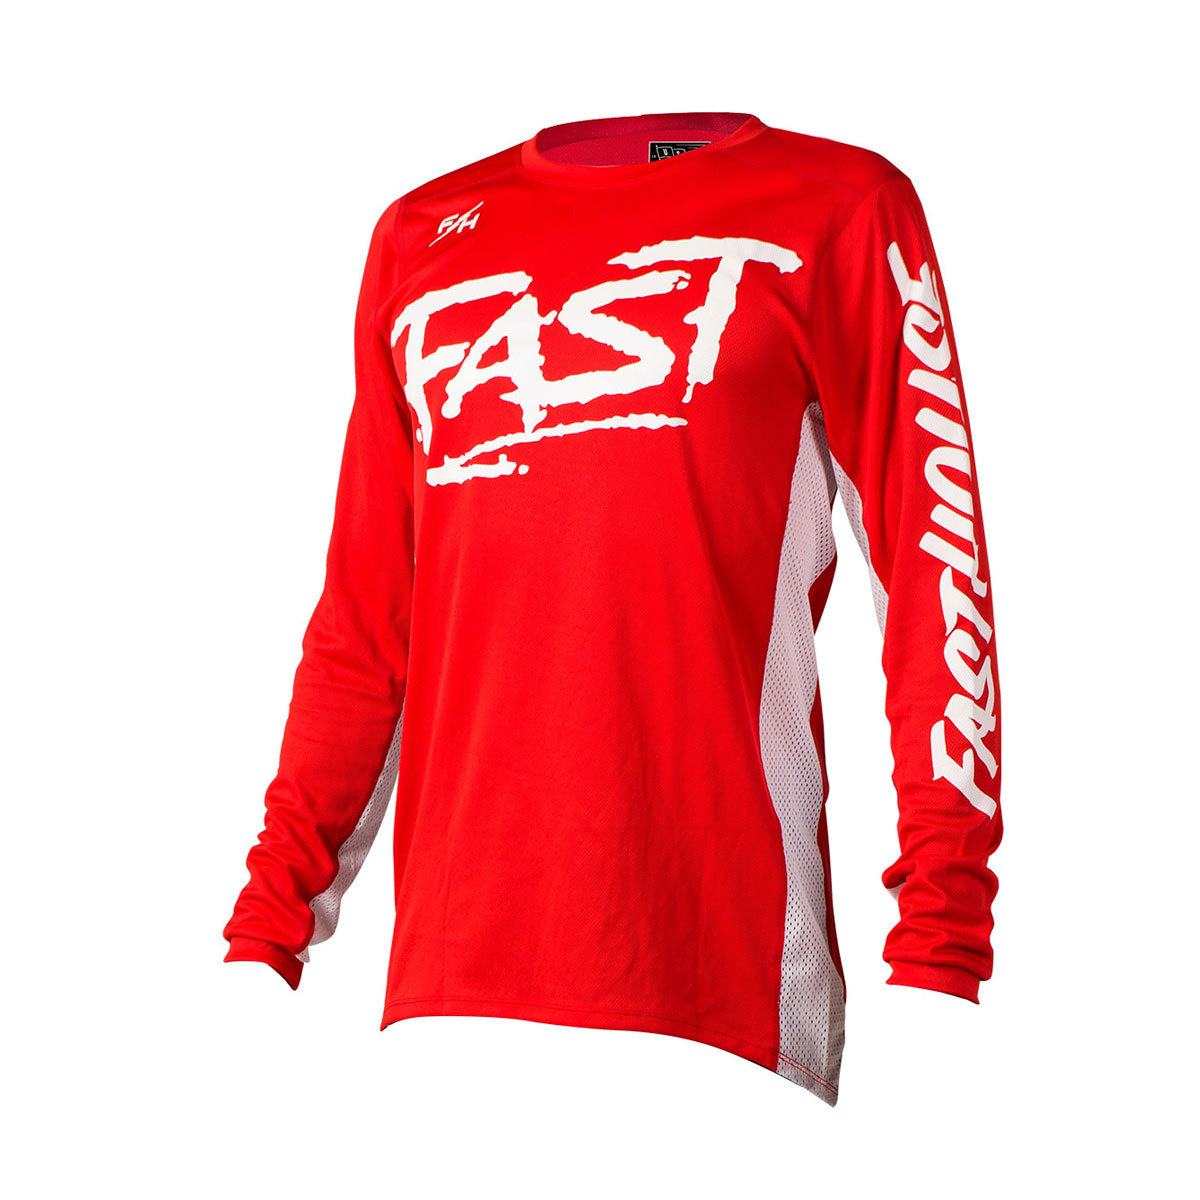 Fasthouse - Fast Youth Jersey - Red